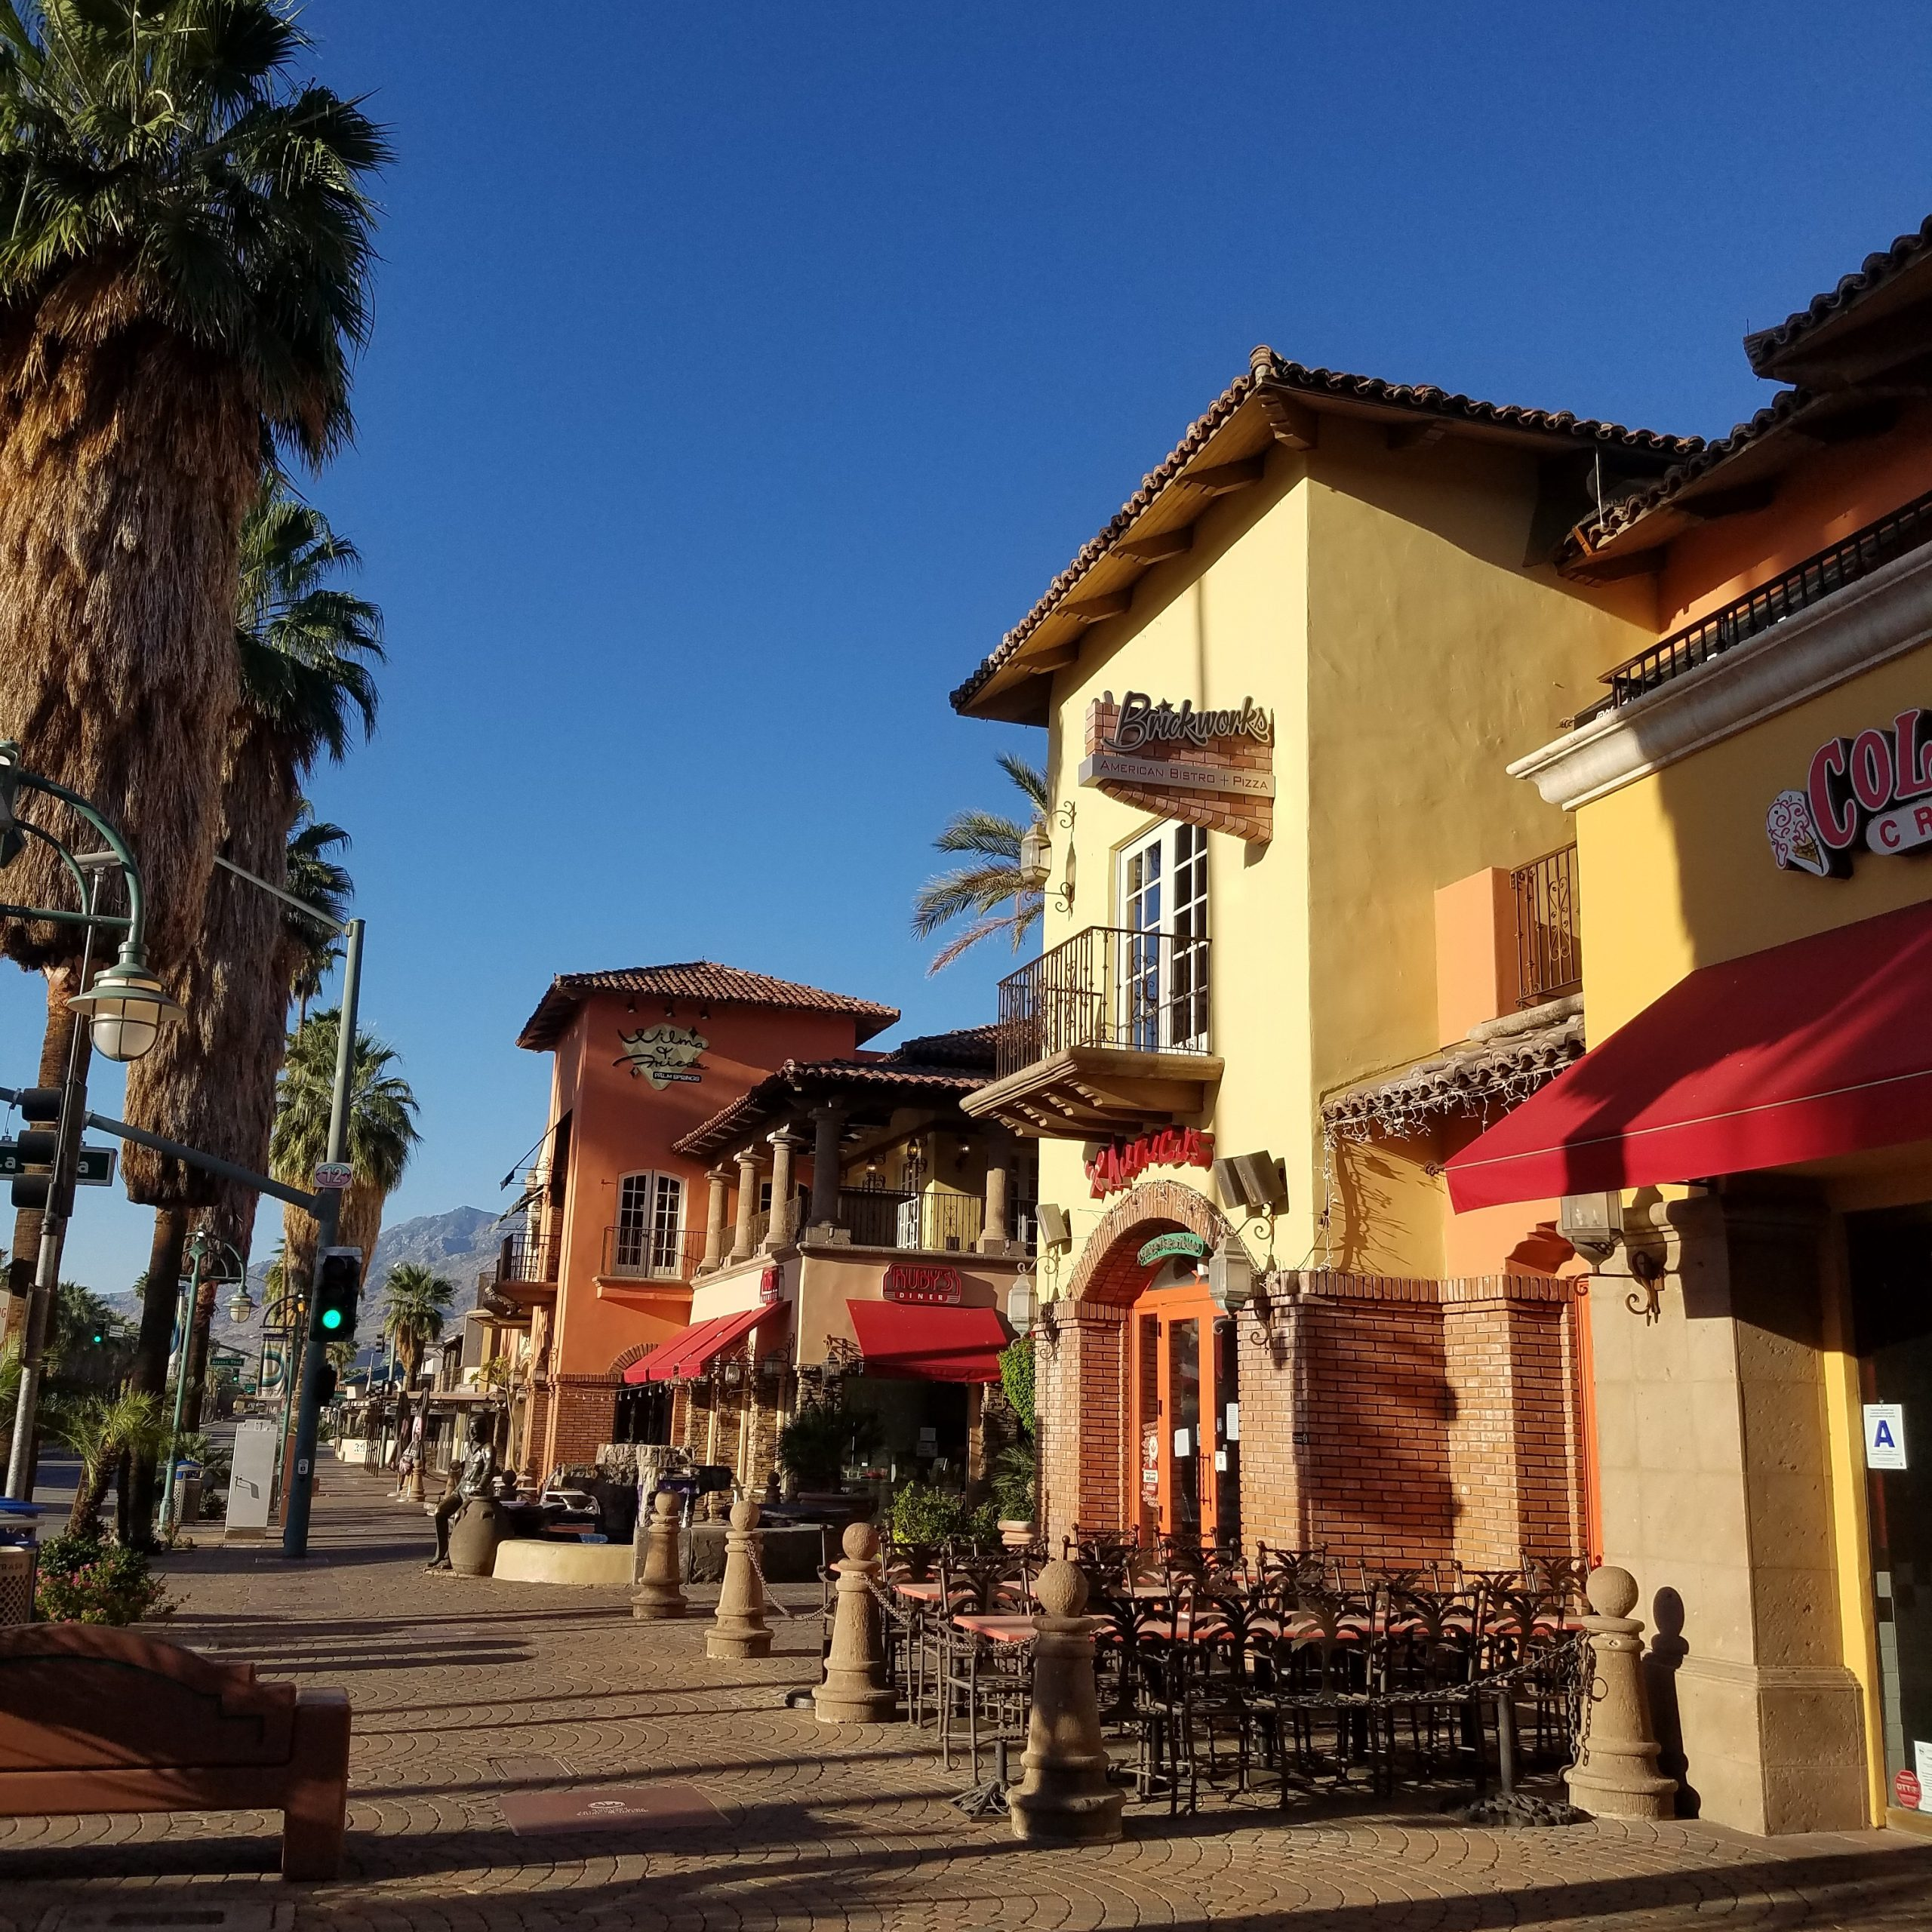 Shopping in downtown Palm Springs California